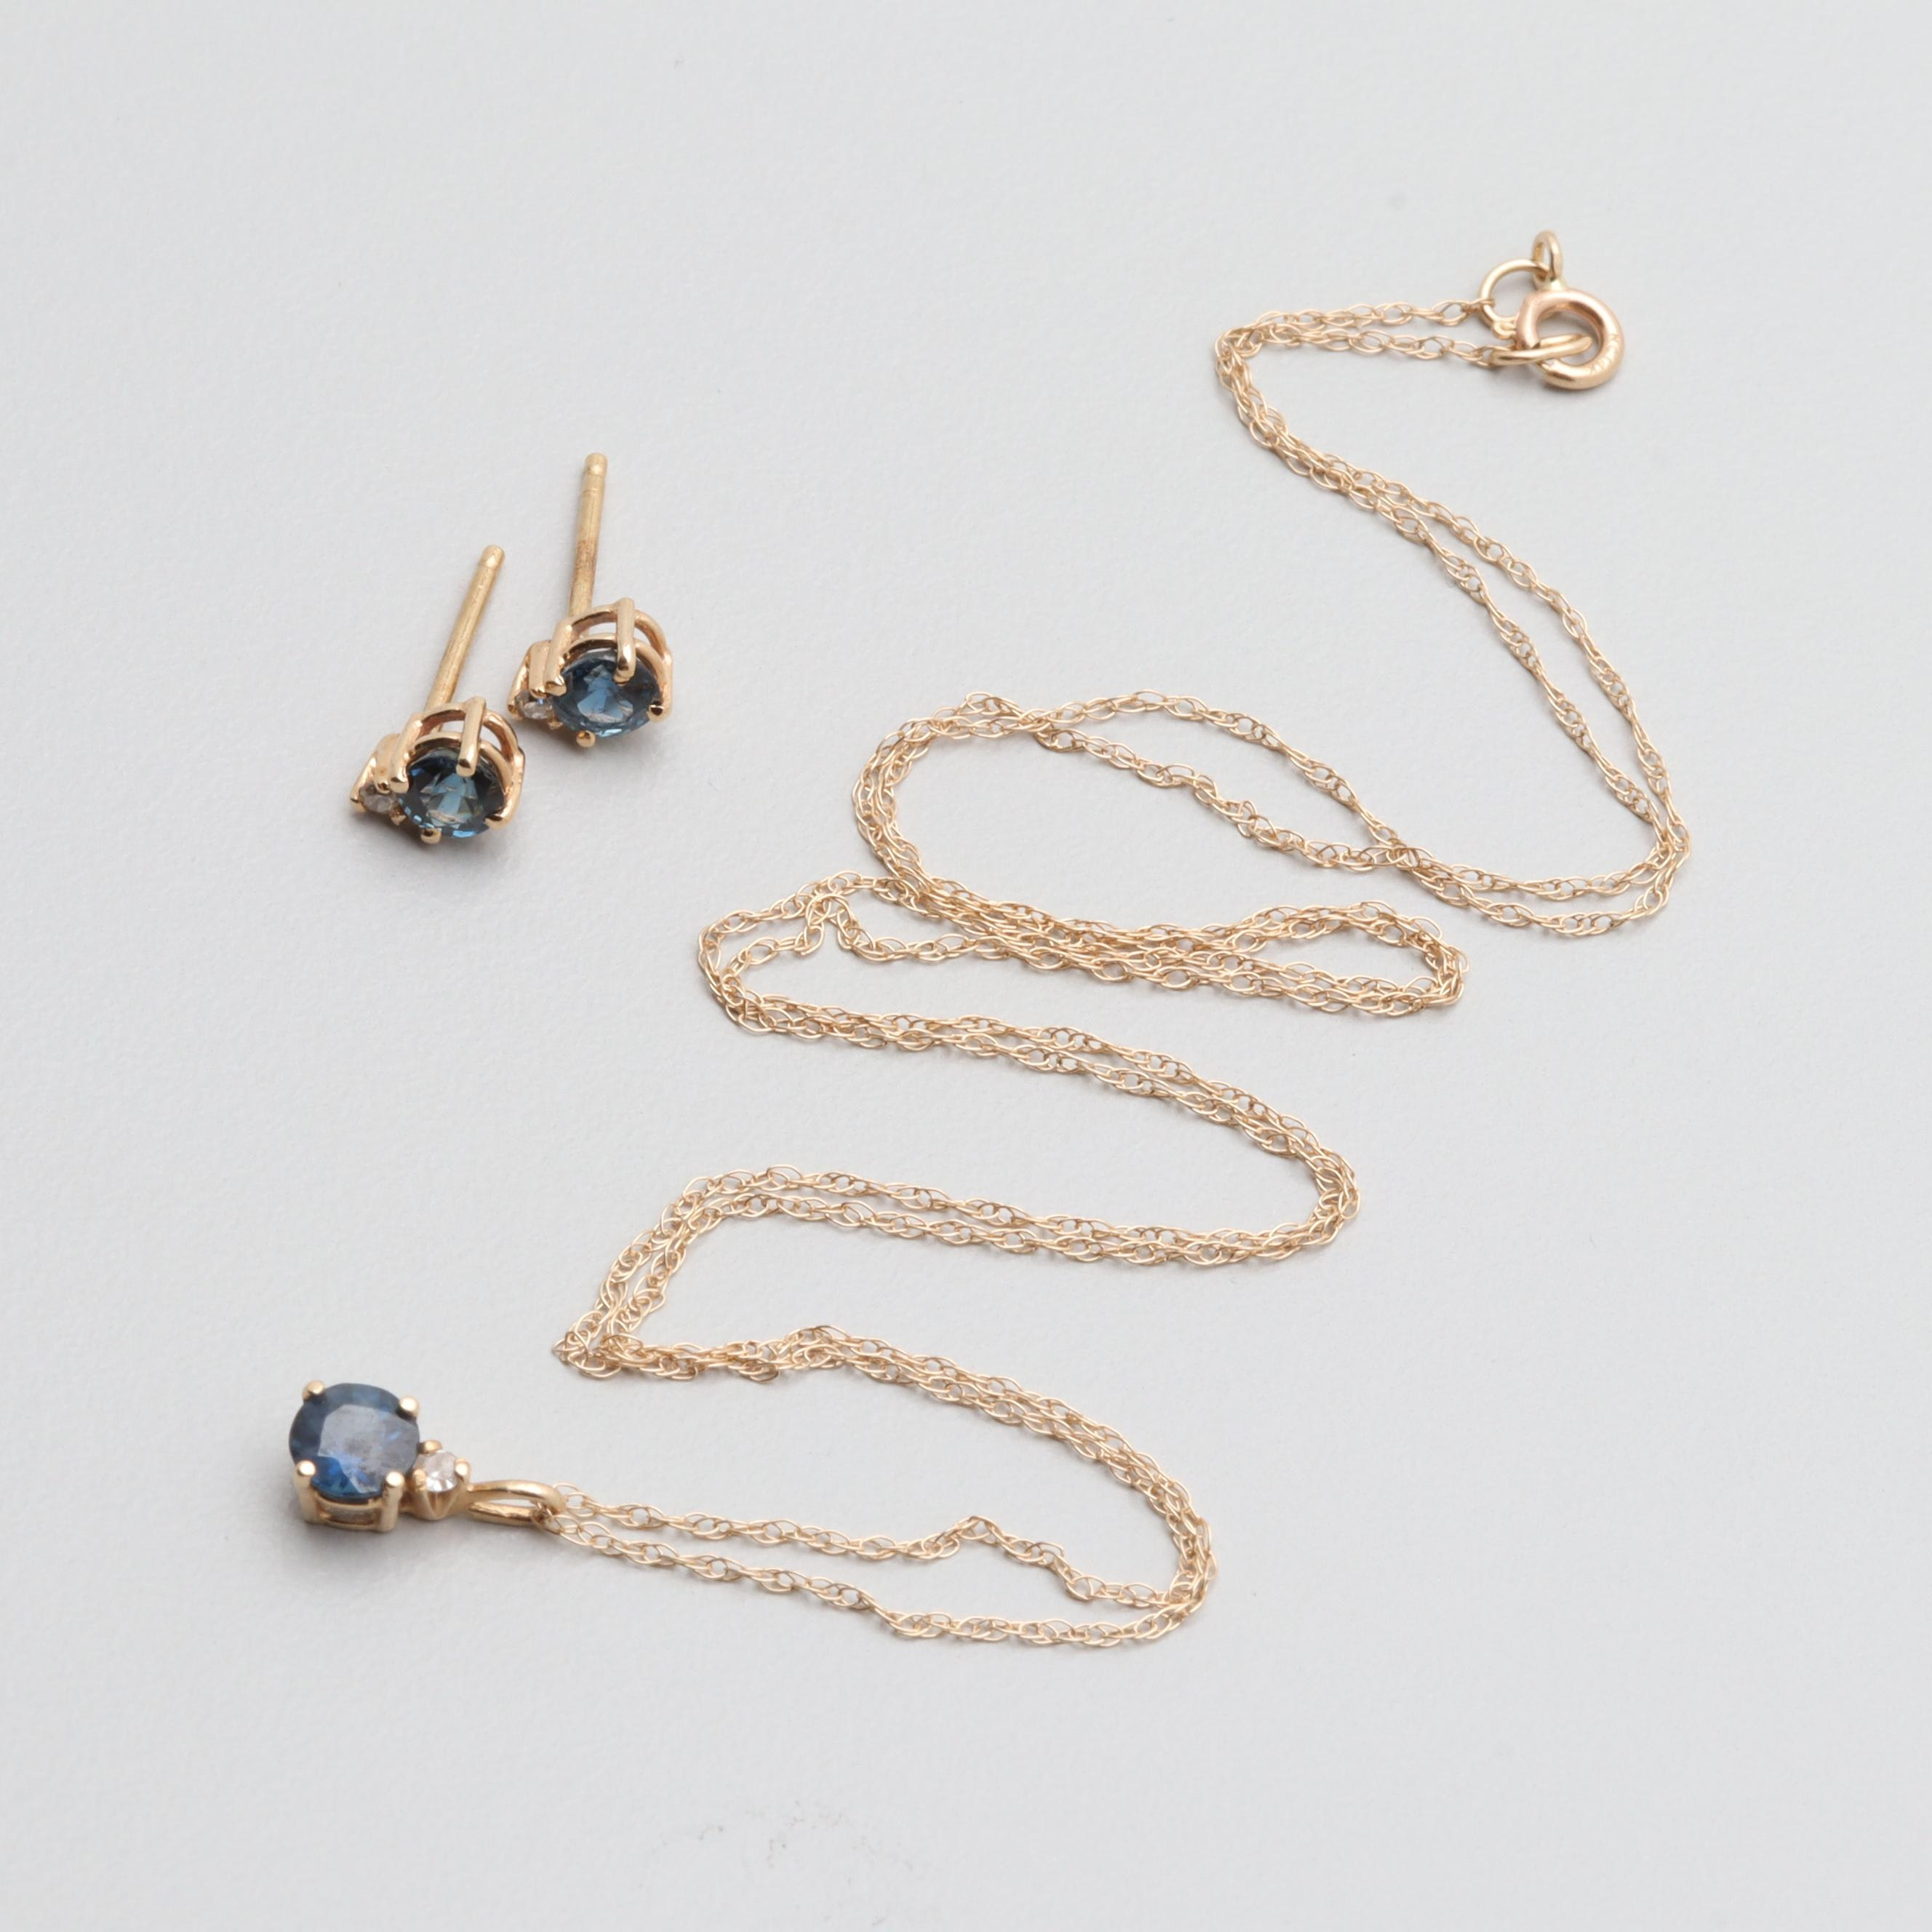 14K Yellow Gold Sapphire and Diamond Necklace and Earring Selection